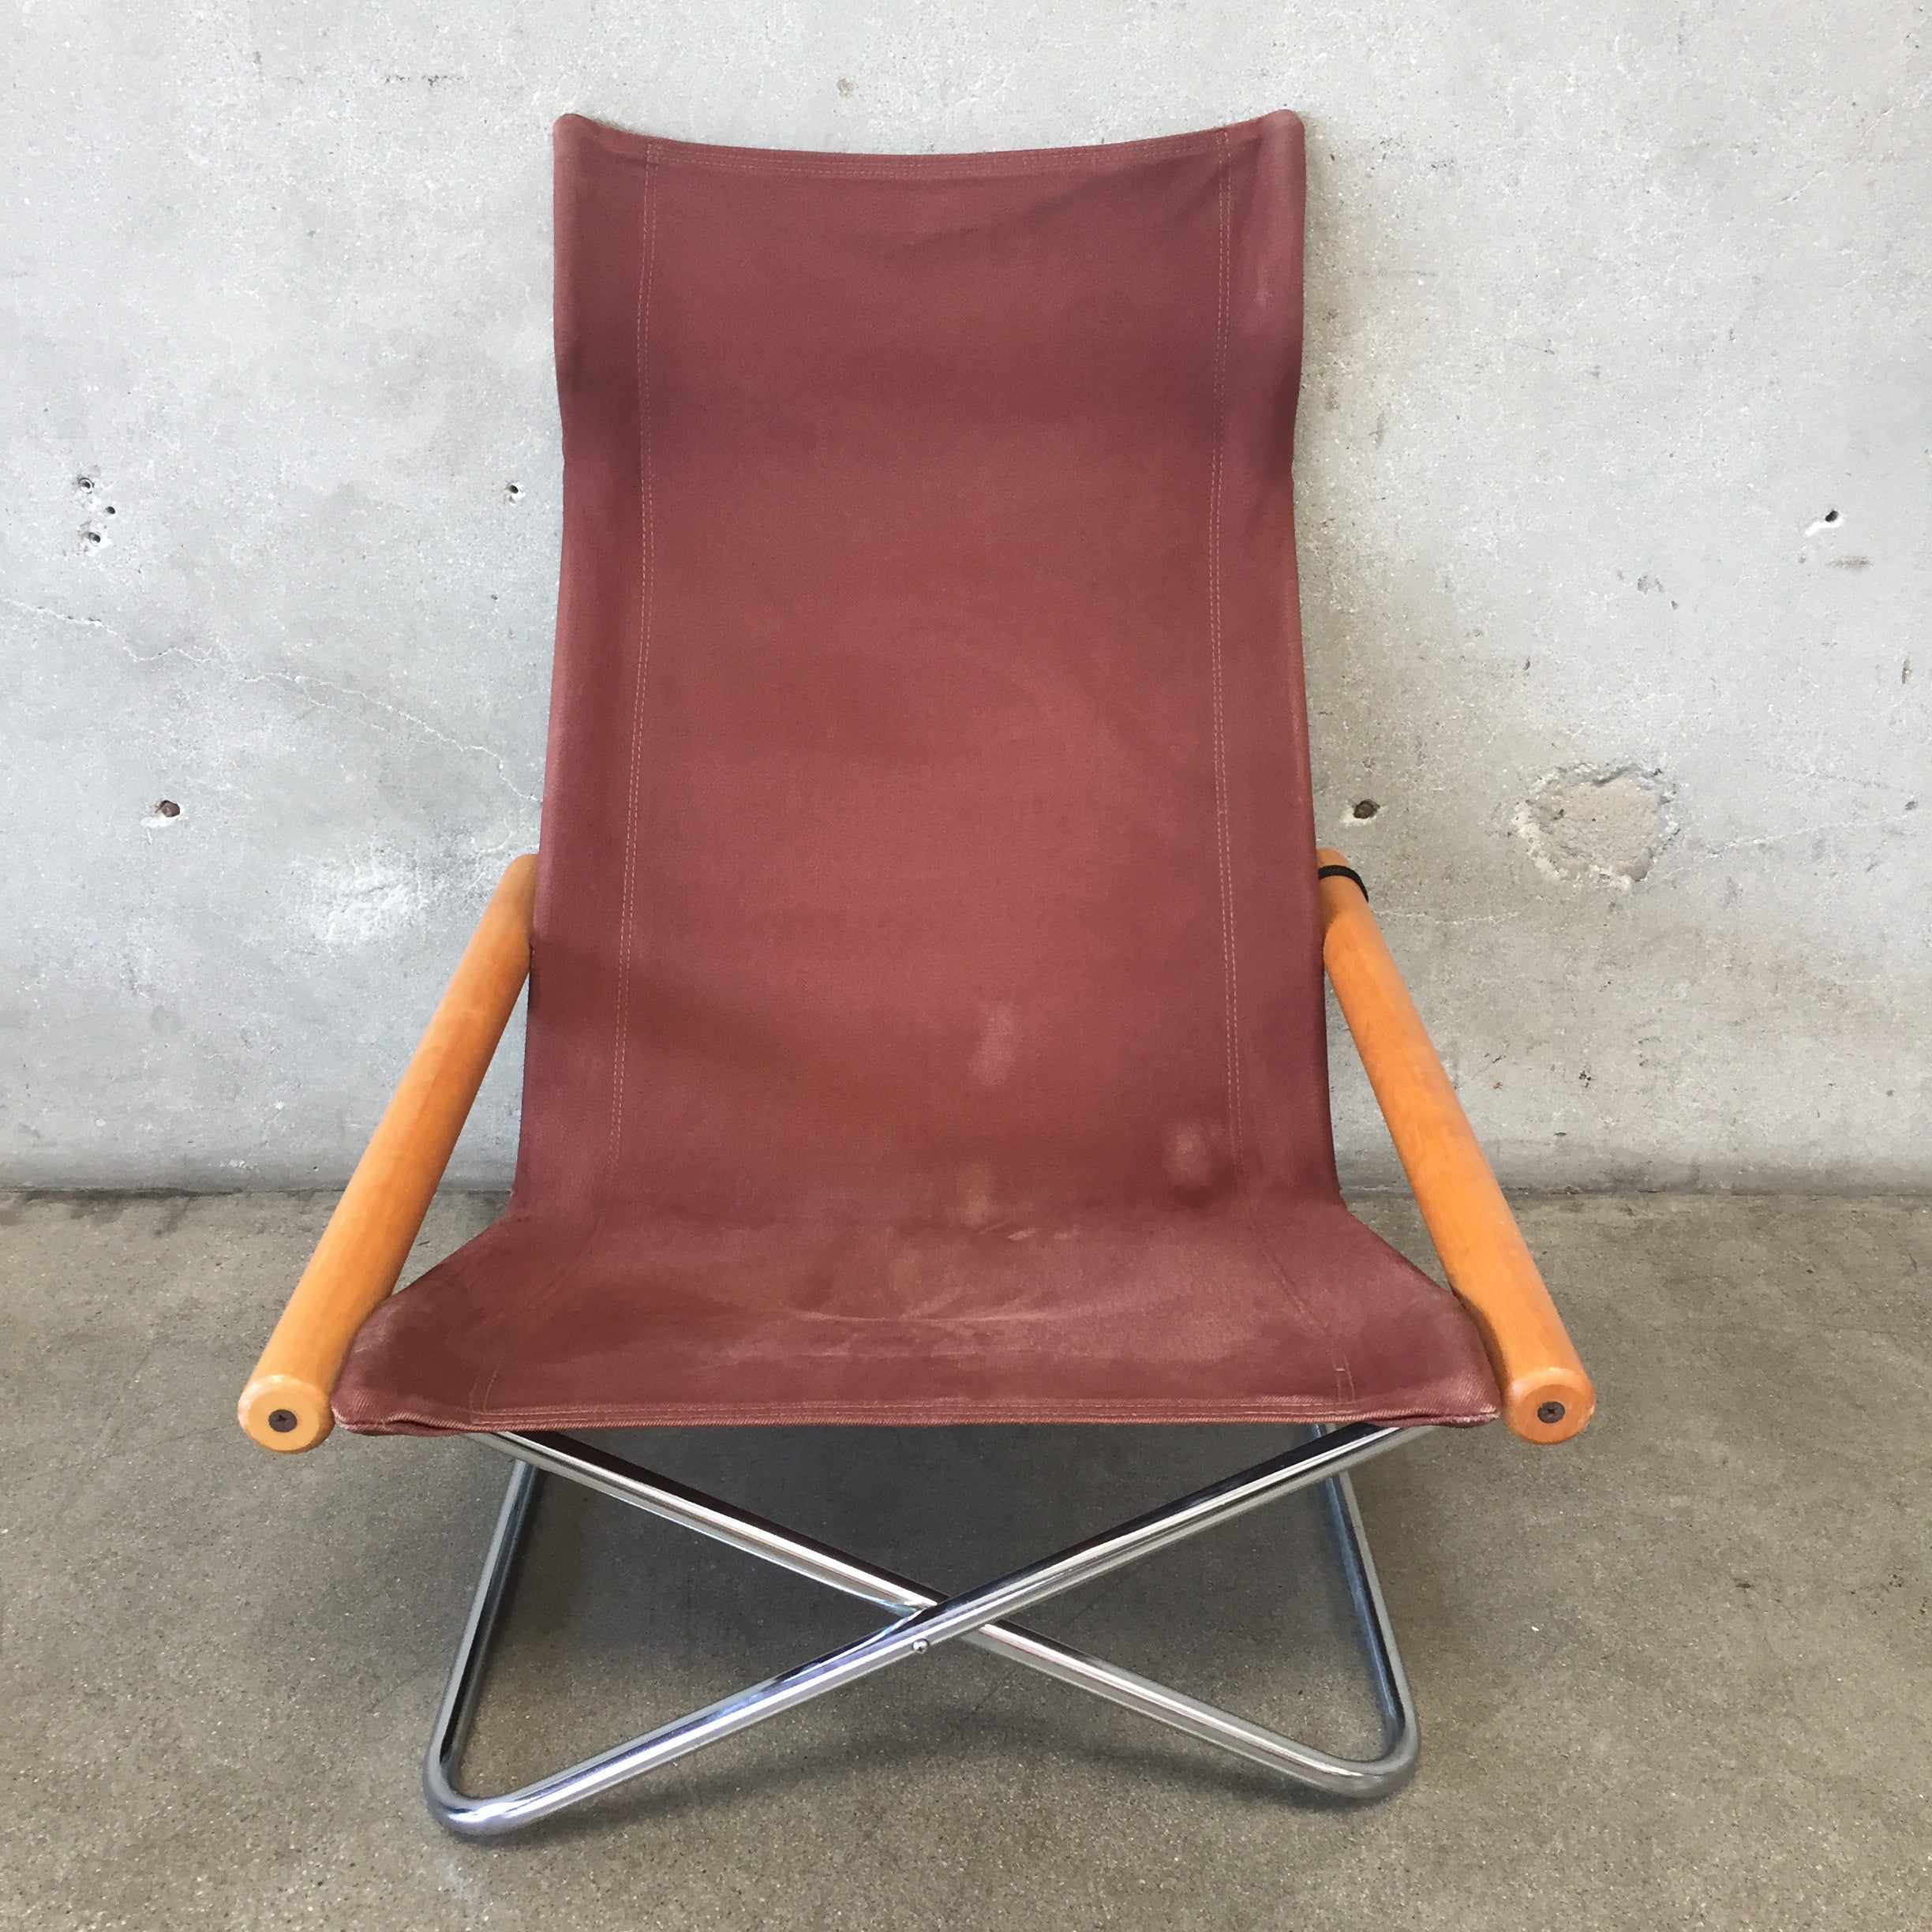 Vintage Japanese Folding Chair by Takeshi Nii – UrbanAmericana